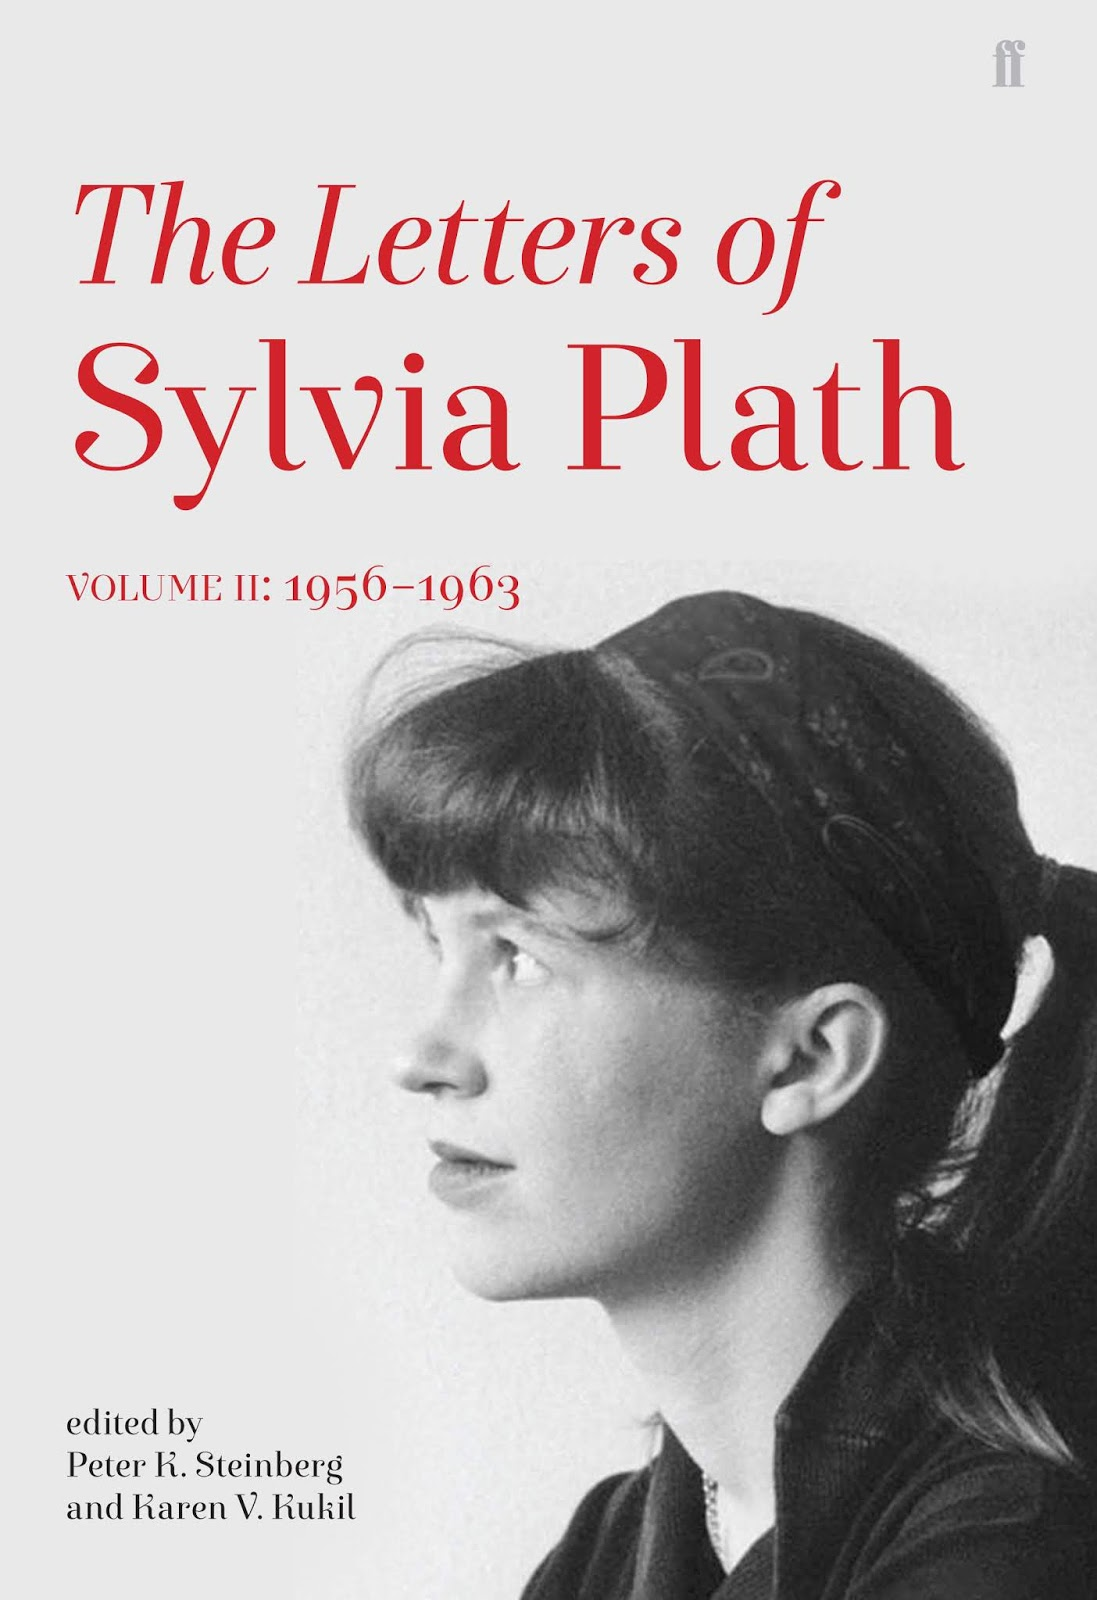 deconstruction paper daddy by sylvia plath A paper on imagery in sylvia plath's daddy by nicola goelzhaeuser sylvia the vampire slayer an essay exploring the meaning of the vampire metaphor in daddy, by malcolm raisans, an english major from bloomsburg university.